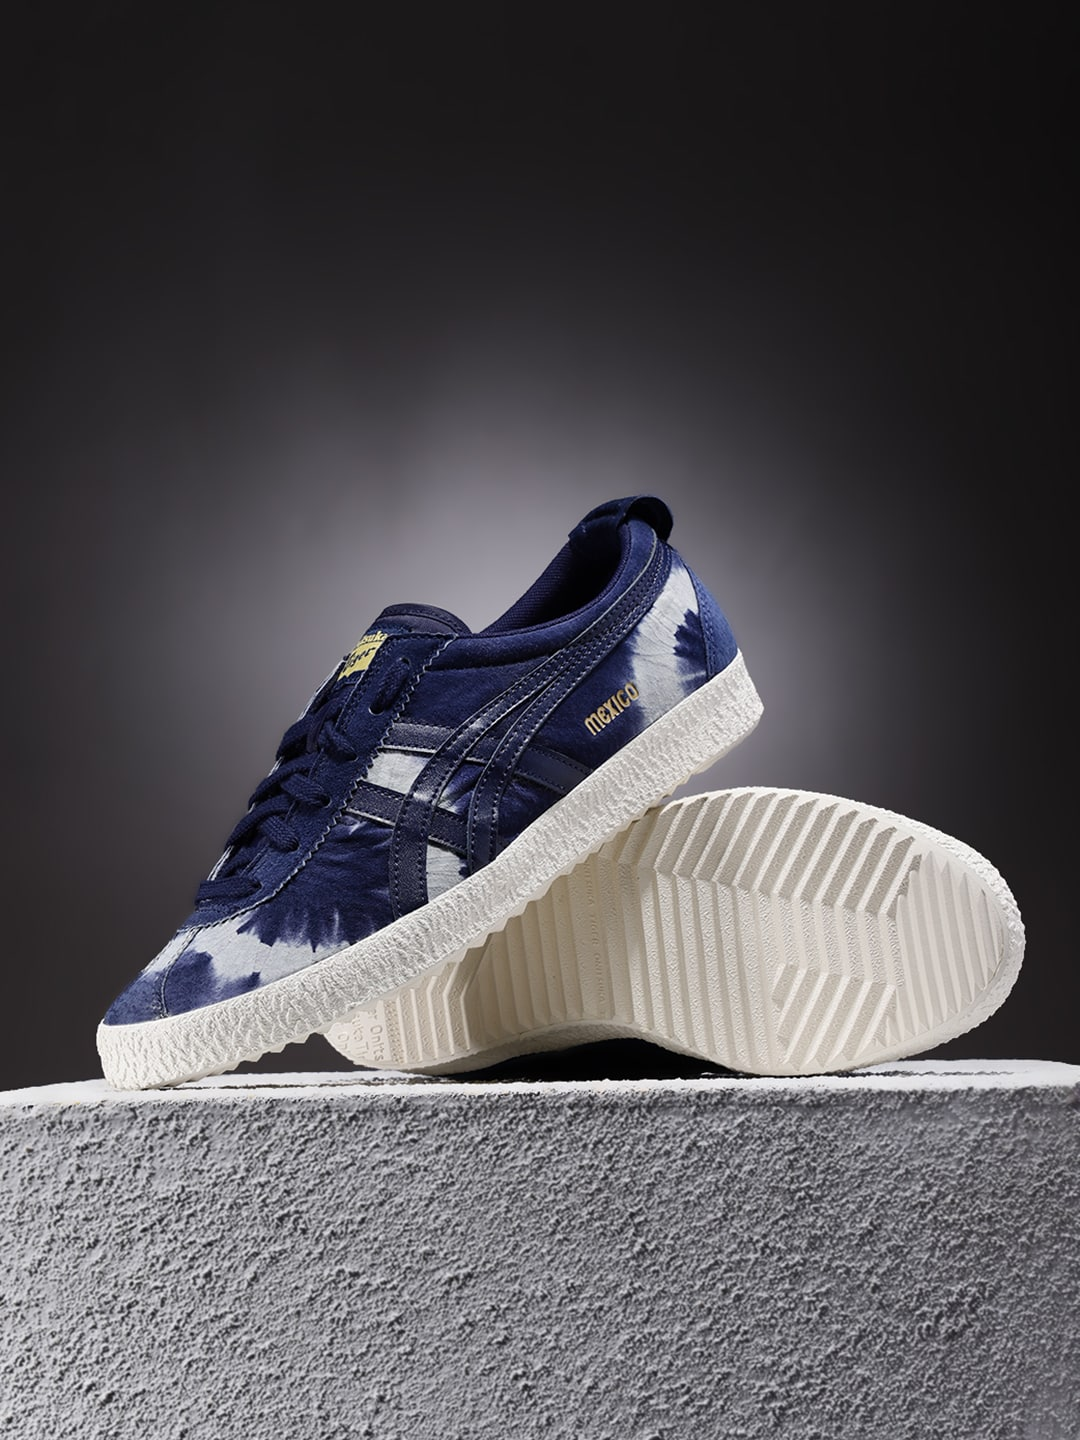 197fcfe44a1f Onitsuka Tiger - Buy Onitsuka Tiger online in India